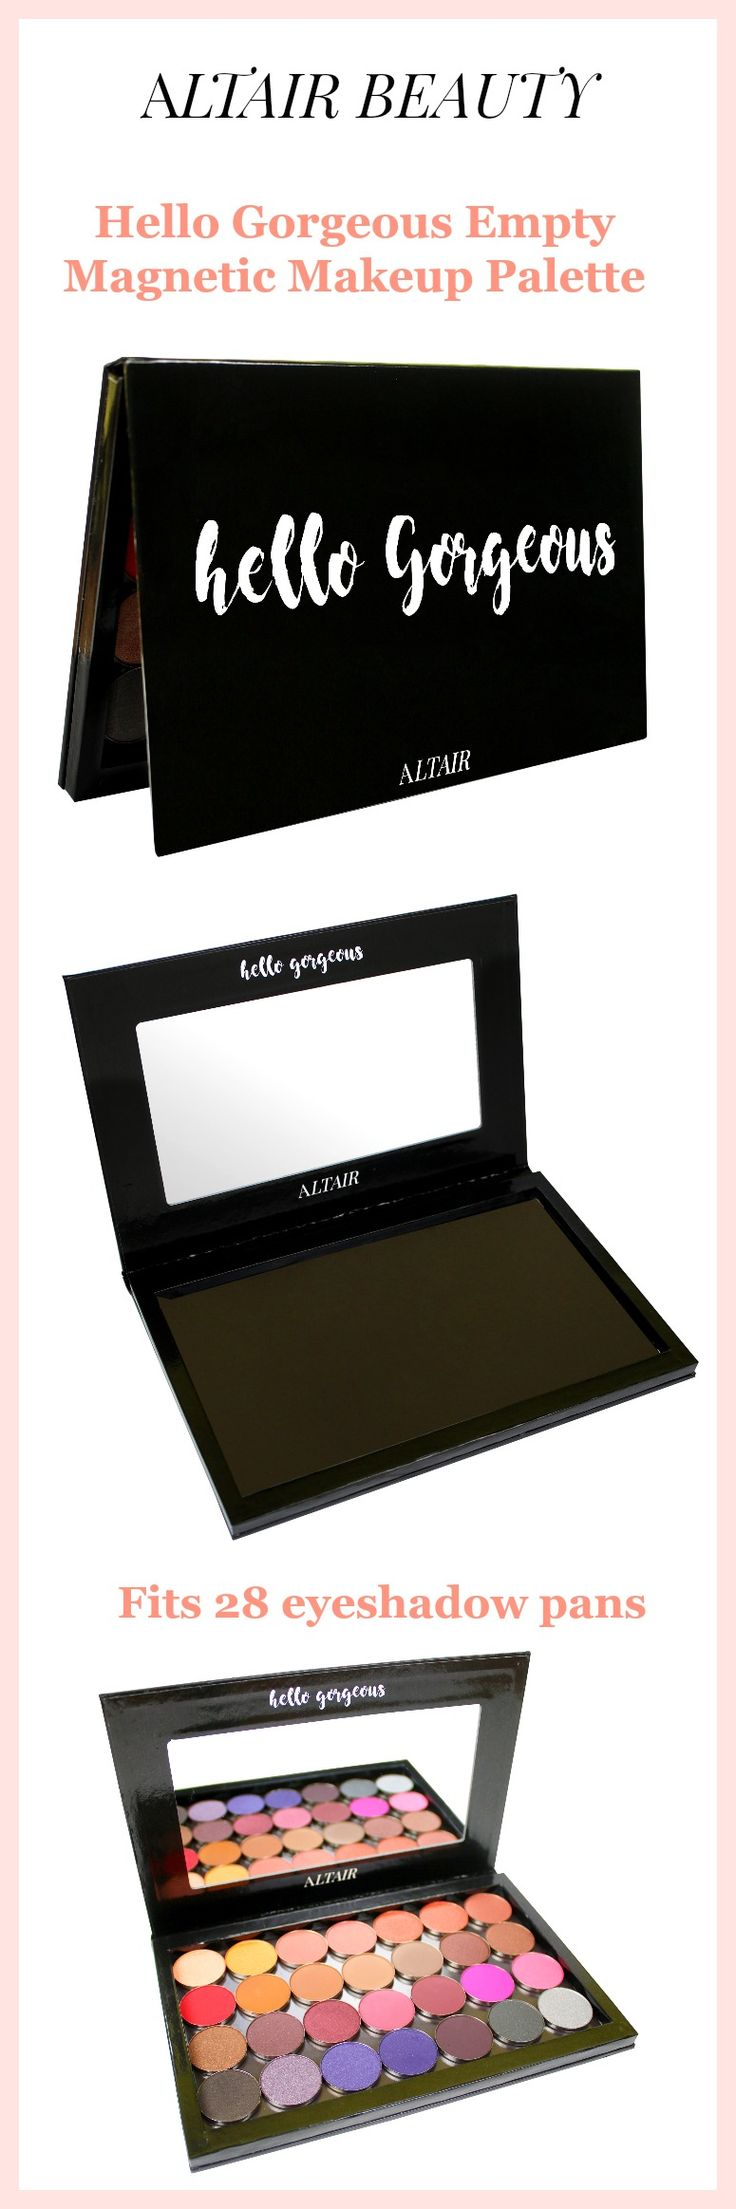 Hello Gorgeous Black Depotting Magnetic Makeup Palette by Altair Beauty with 10 pcs Metal Stickers. Depot Eyeshadows, Blush, Bronzer, Highlighter. Includes free makeup spatula. Holds 28 standard sized eyeshadow pans. Organize your DIY beauty.